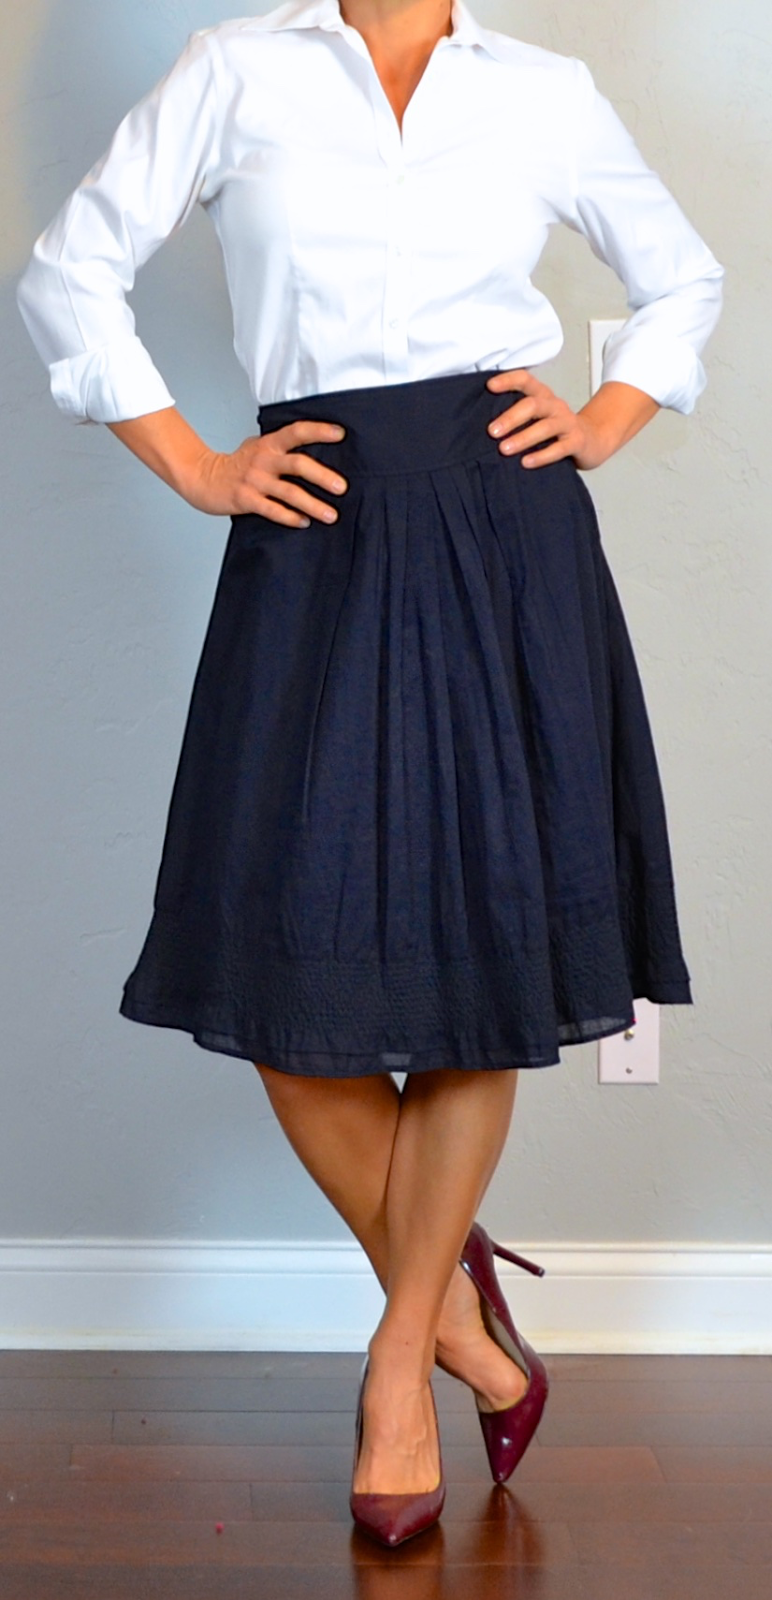 5892031af5dd88 outfit post: navy a-line midi skirt, white button down shirt, burgundy  pointed toe pumps